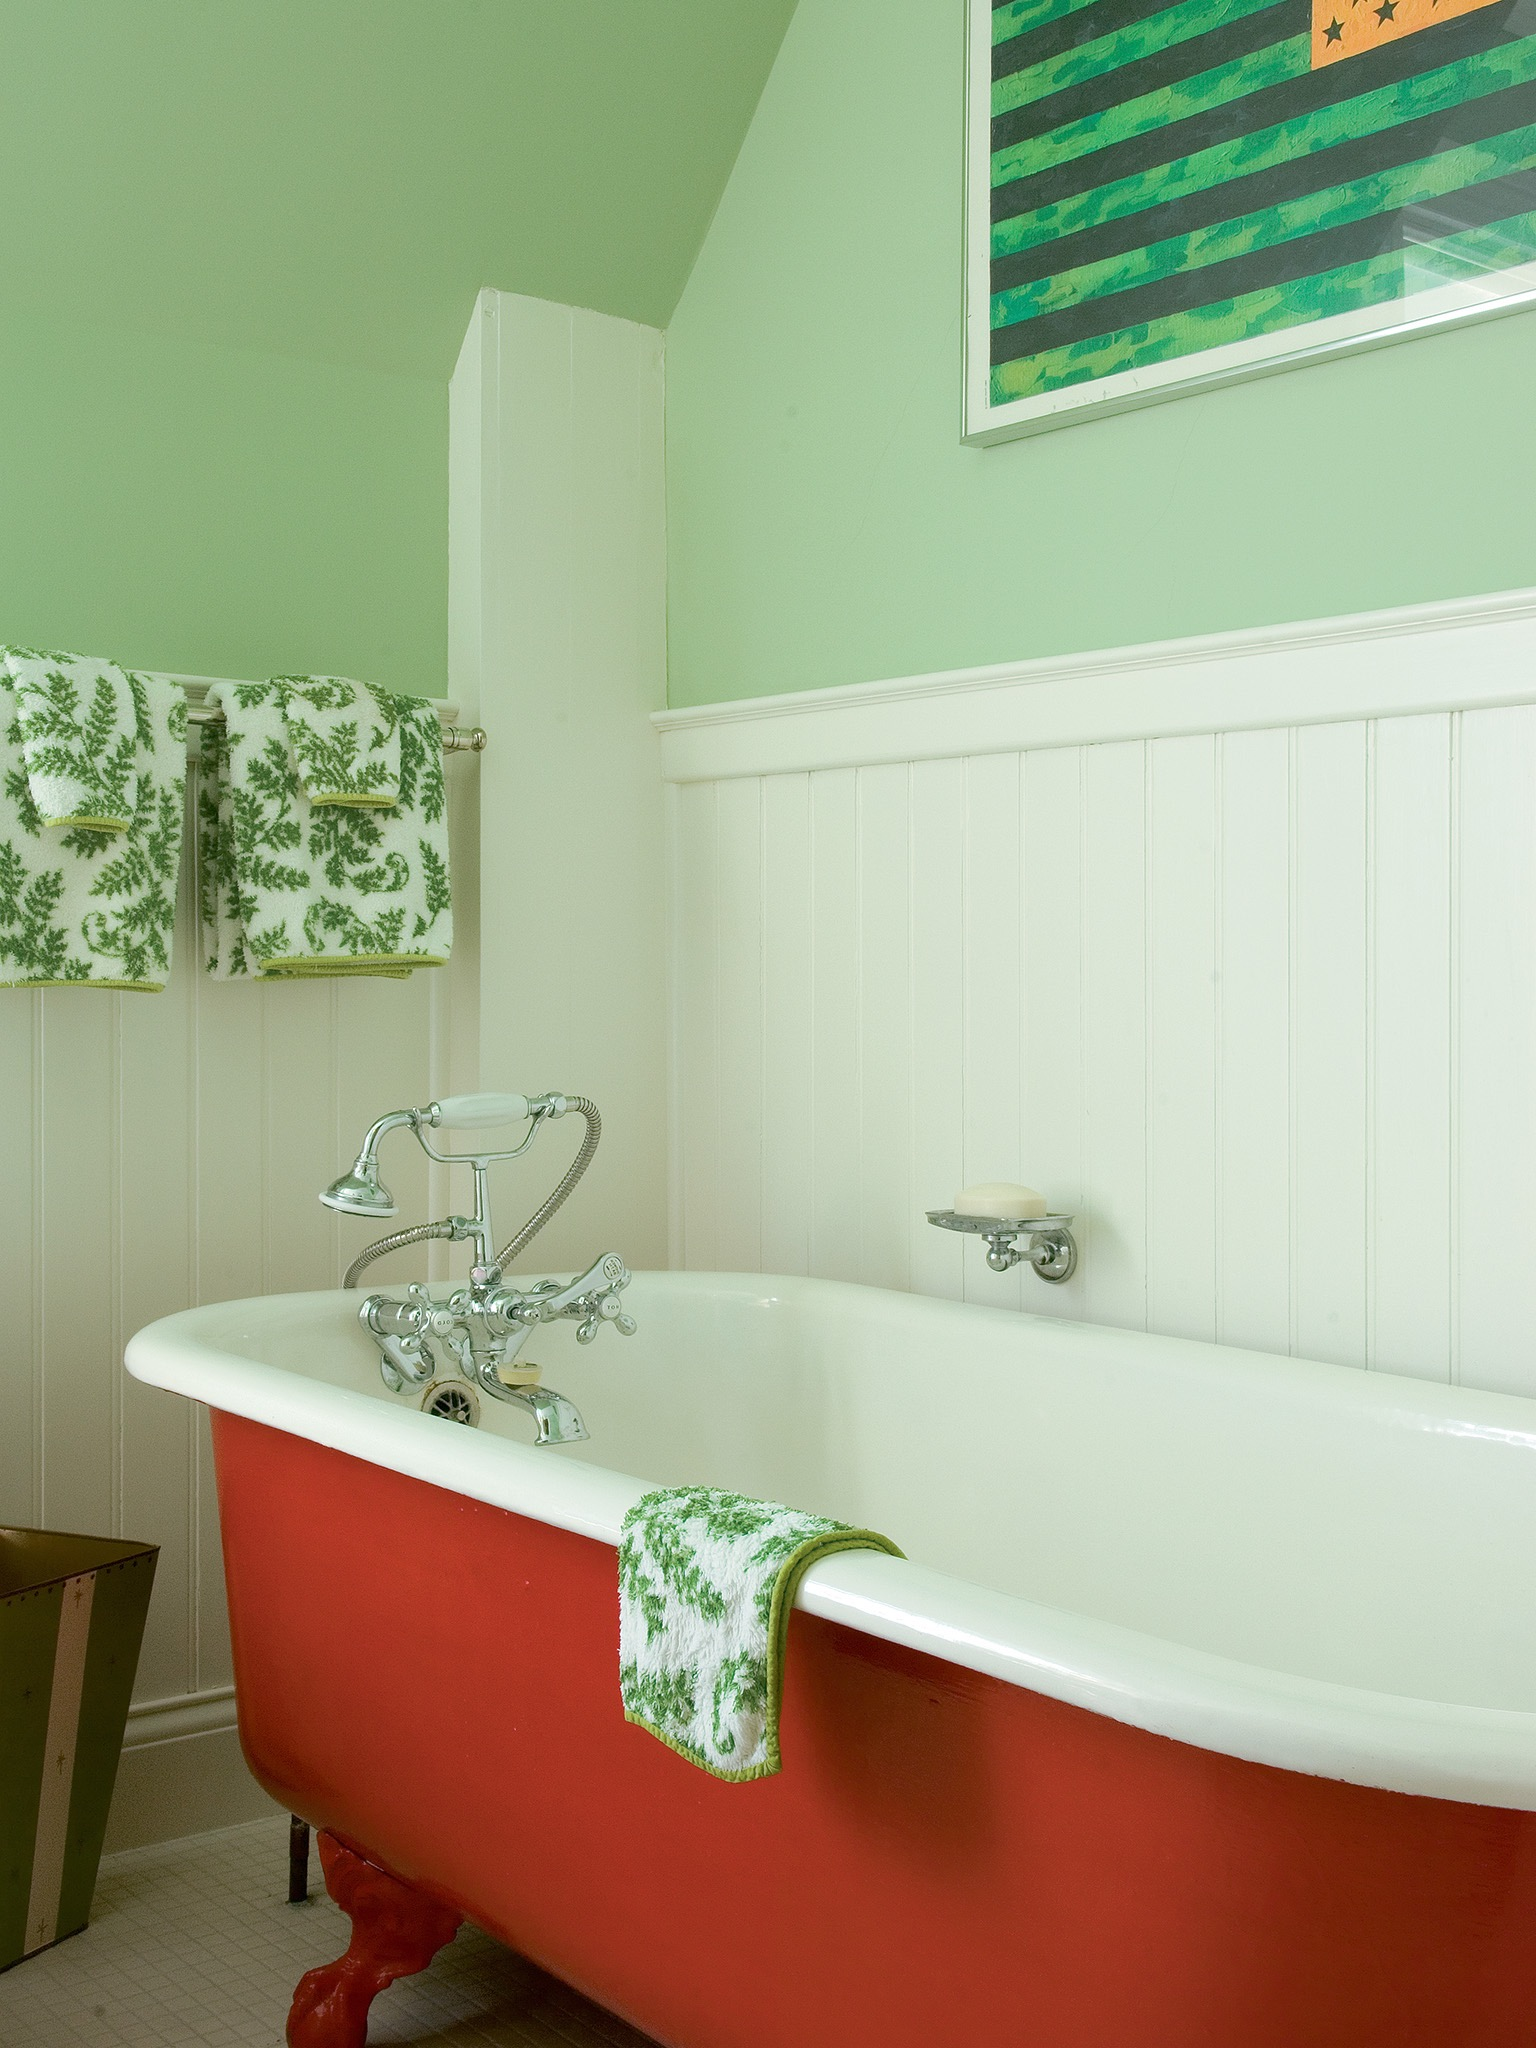 Classic Bathroom Design For Small Interior Space (Image 4 of 29)